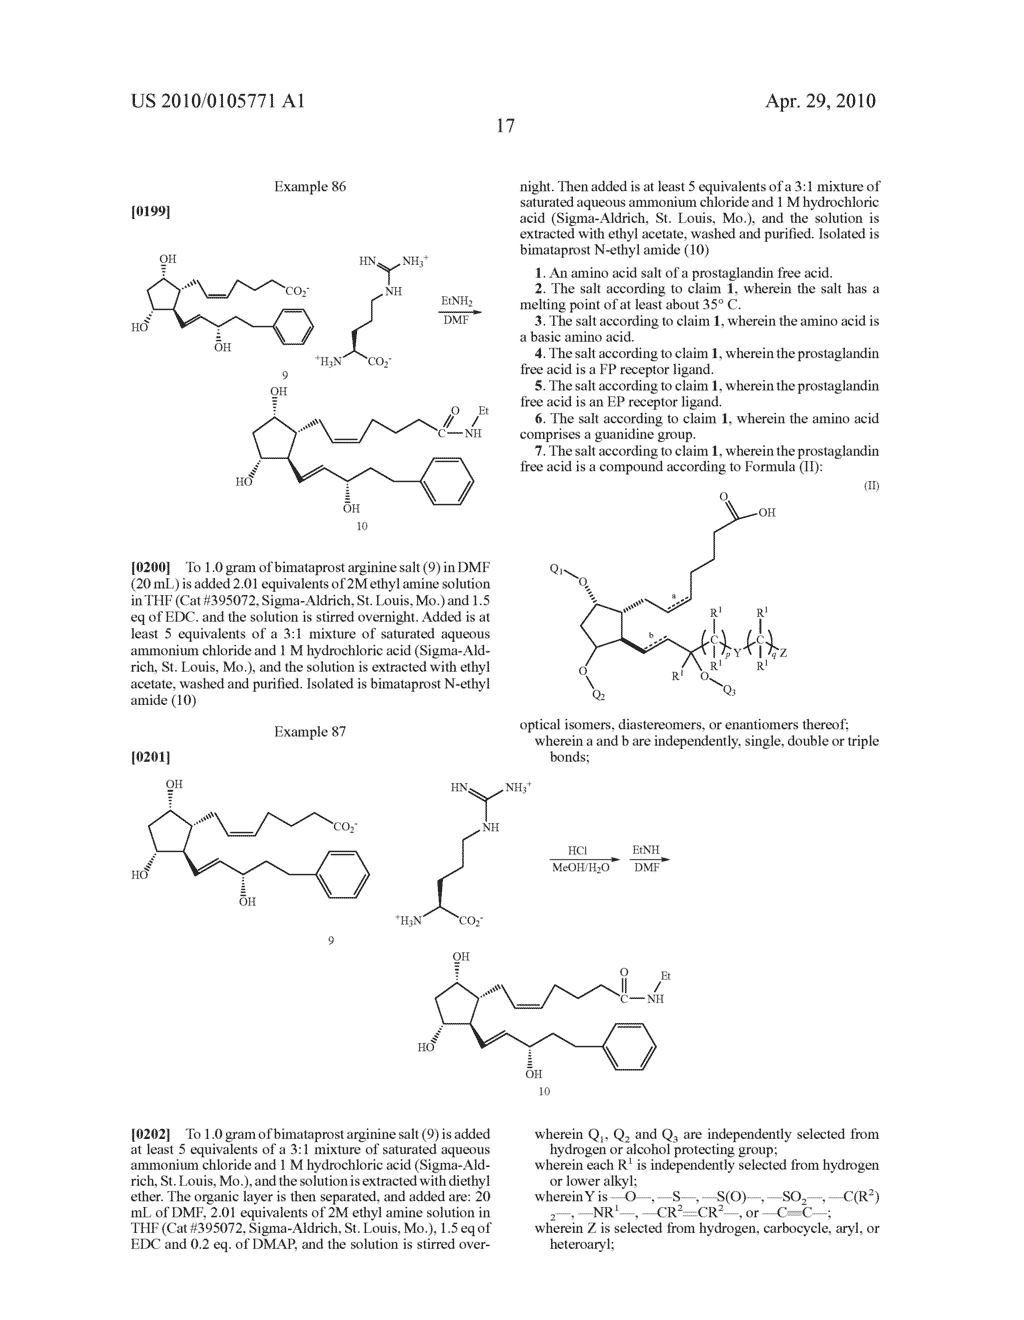 AMINO ACID SALTS OF PROSTAGLANDINS - diagram, schematic, and image 18